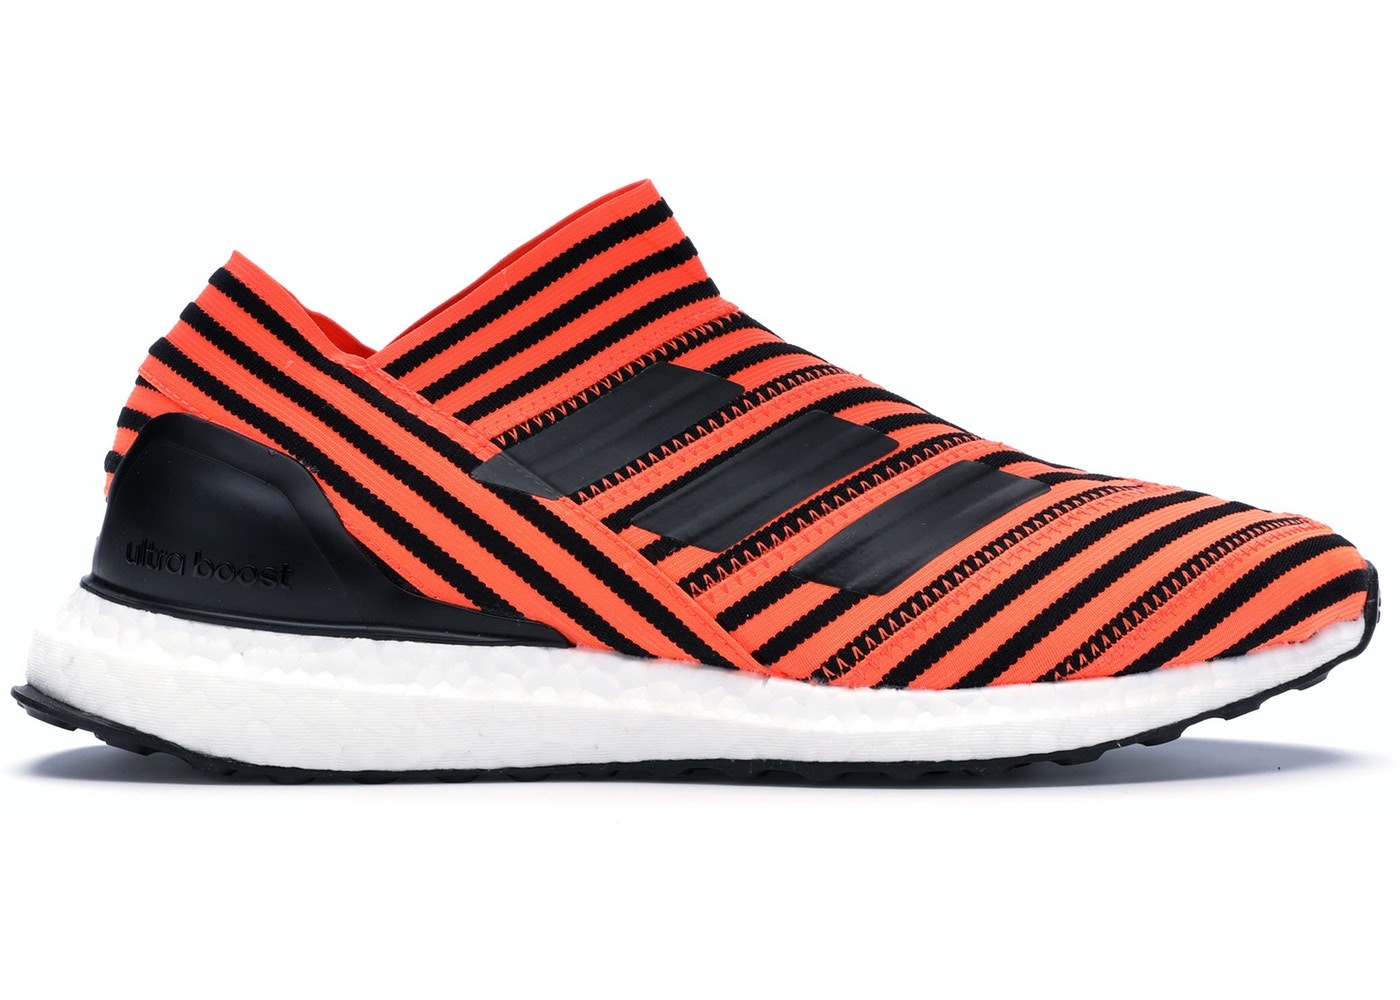 best sneakers 4d2aa 205ce adidas Nemeziz Tango 17 Ultra Boost Solar Orange - CG3659